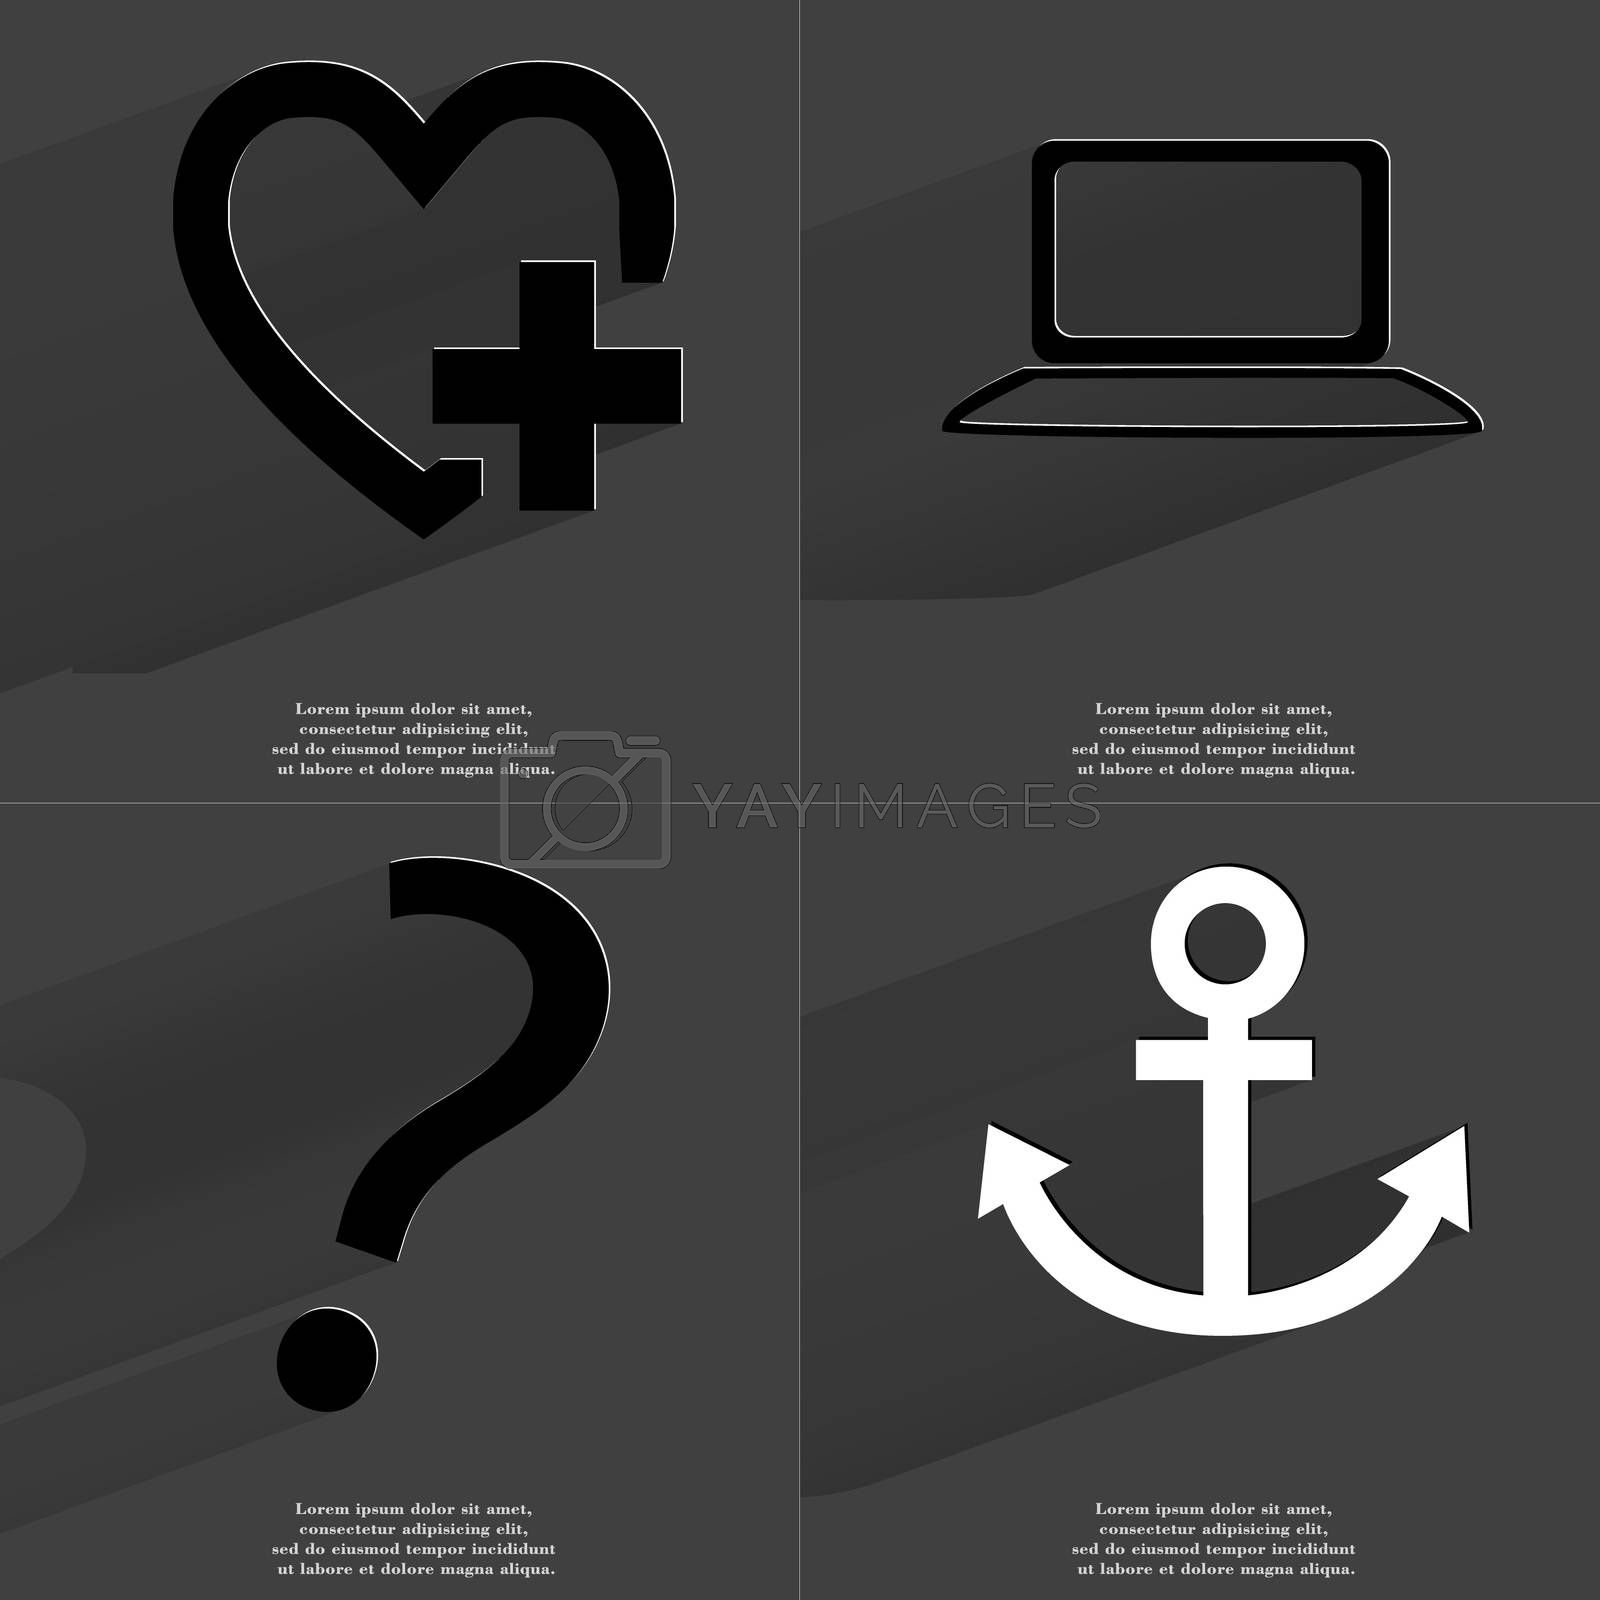 Royalty free image of Heart plus sign, Laptop, Question mark, Anchor. Symbols with long shadow. Flat design by serhii_lohvyniuk